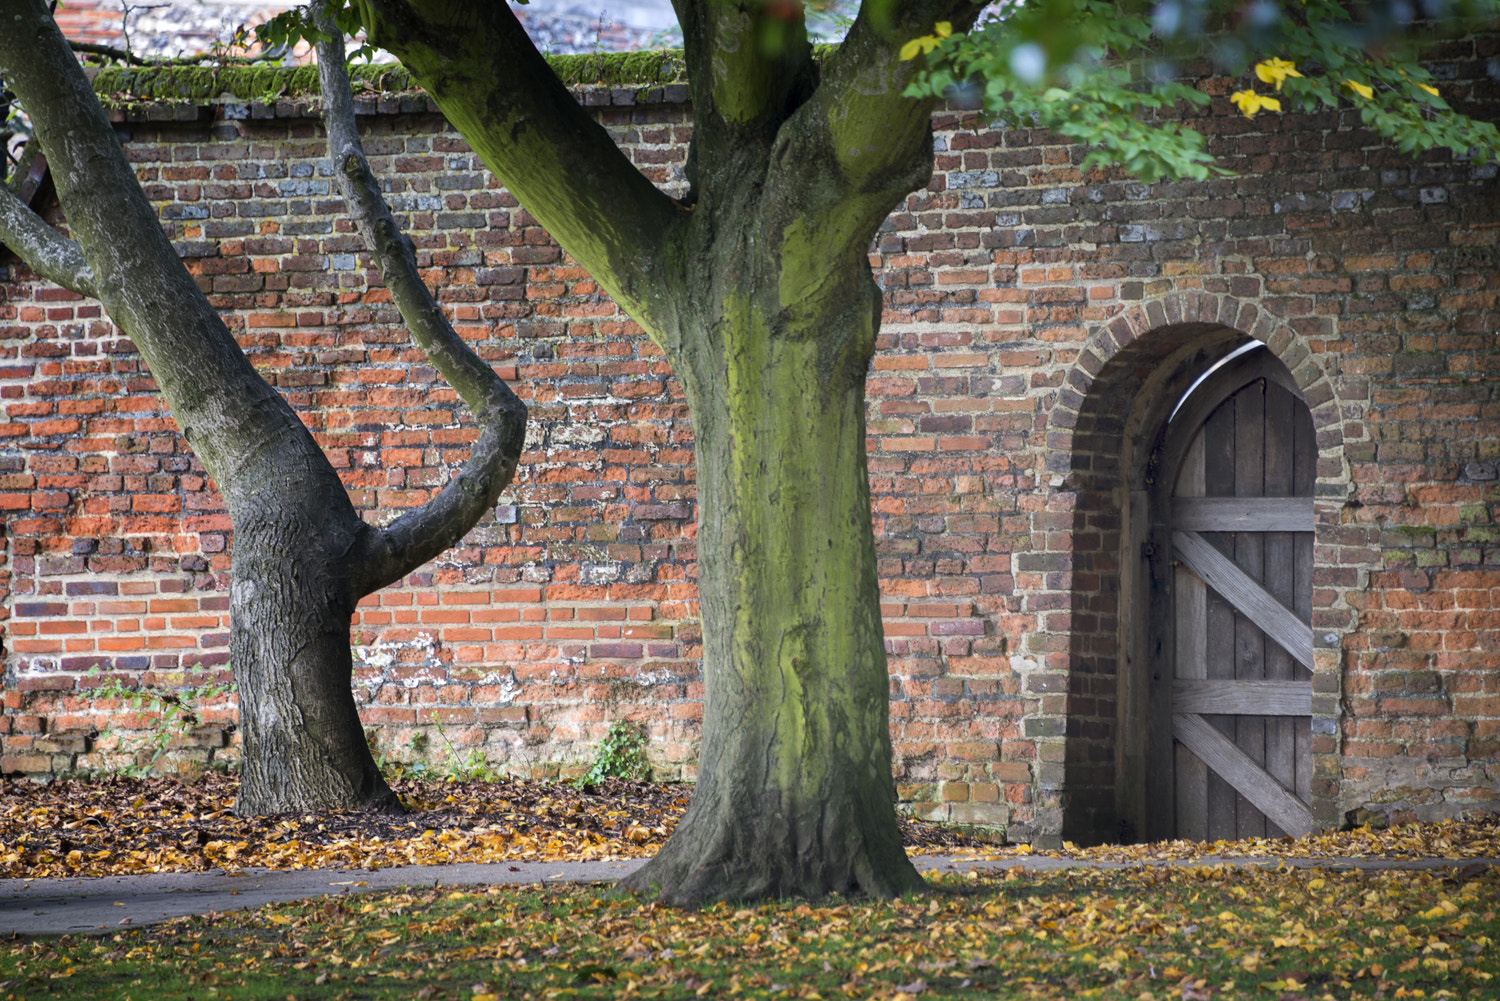 Photograph St Albans - World Wide Photo Walk by Saleh Ahmed on 500px